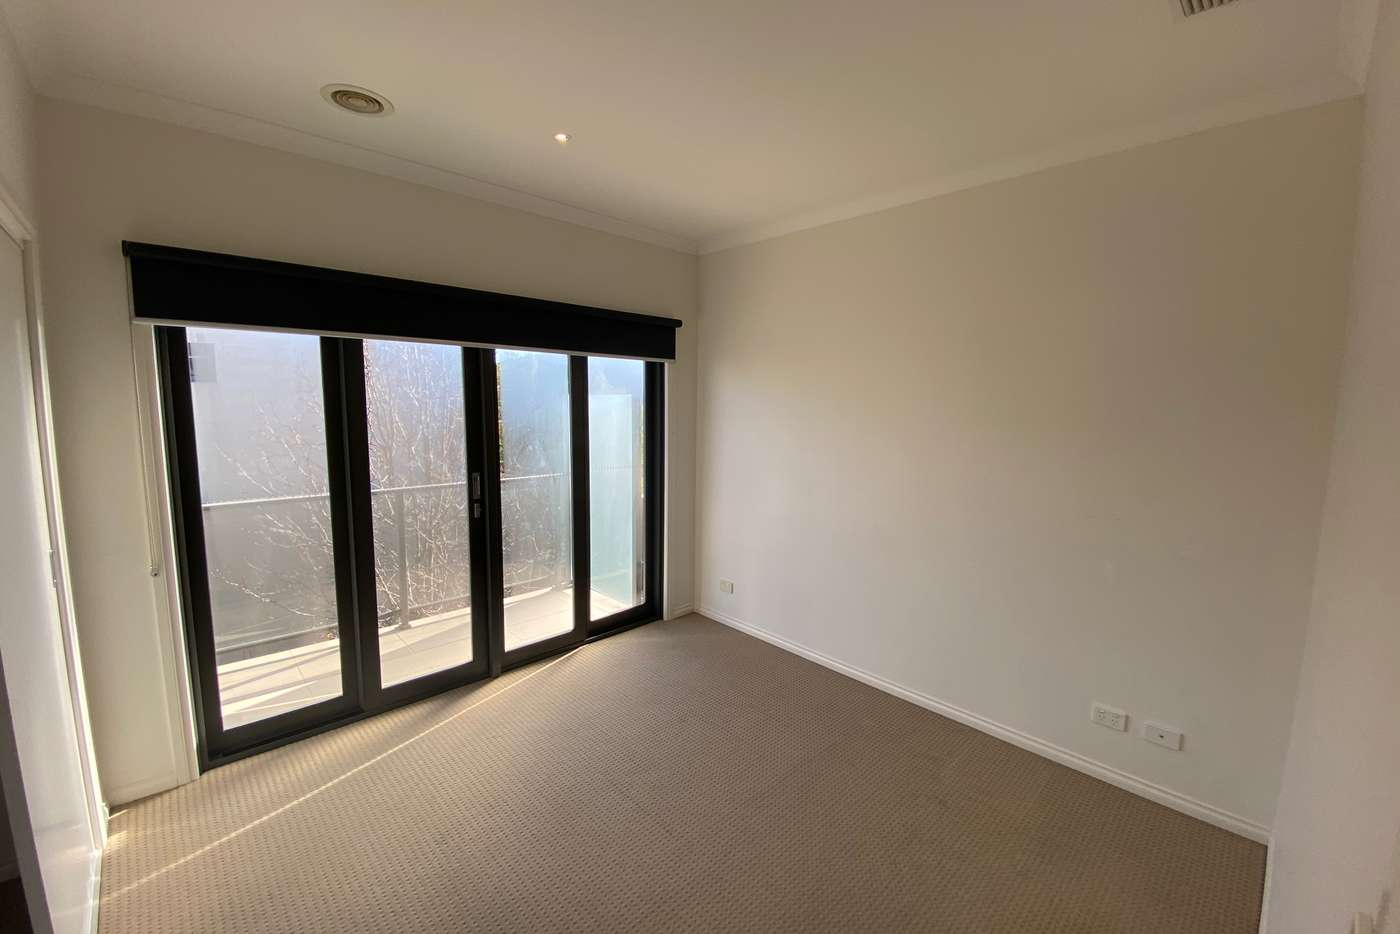 Seventh view of Homely house listing, 1/73 Winfield Road, Balwyn North VIC 3104